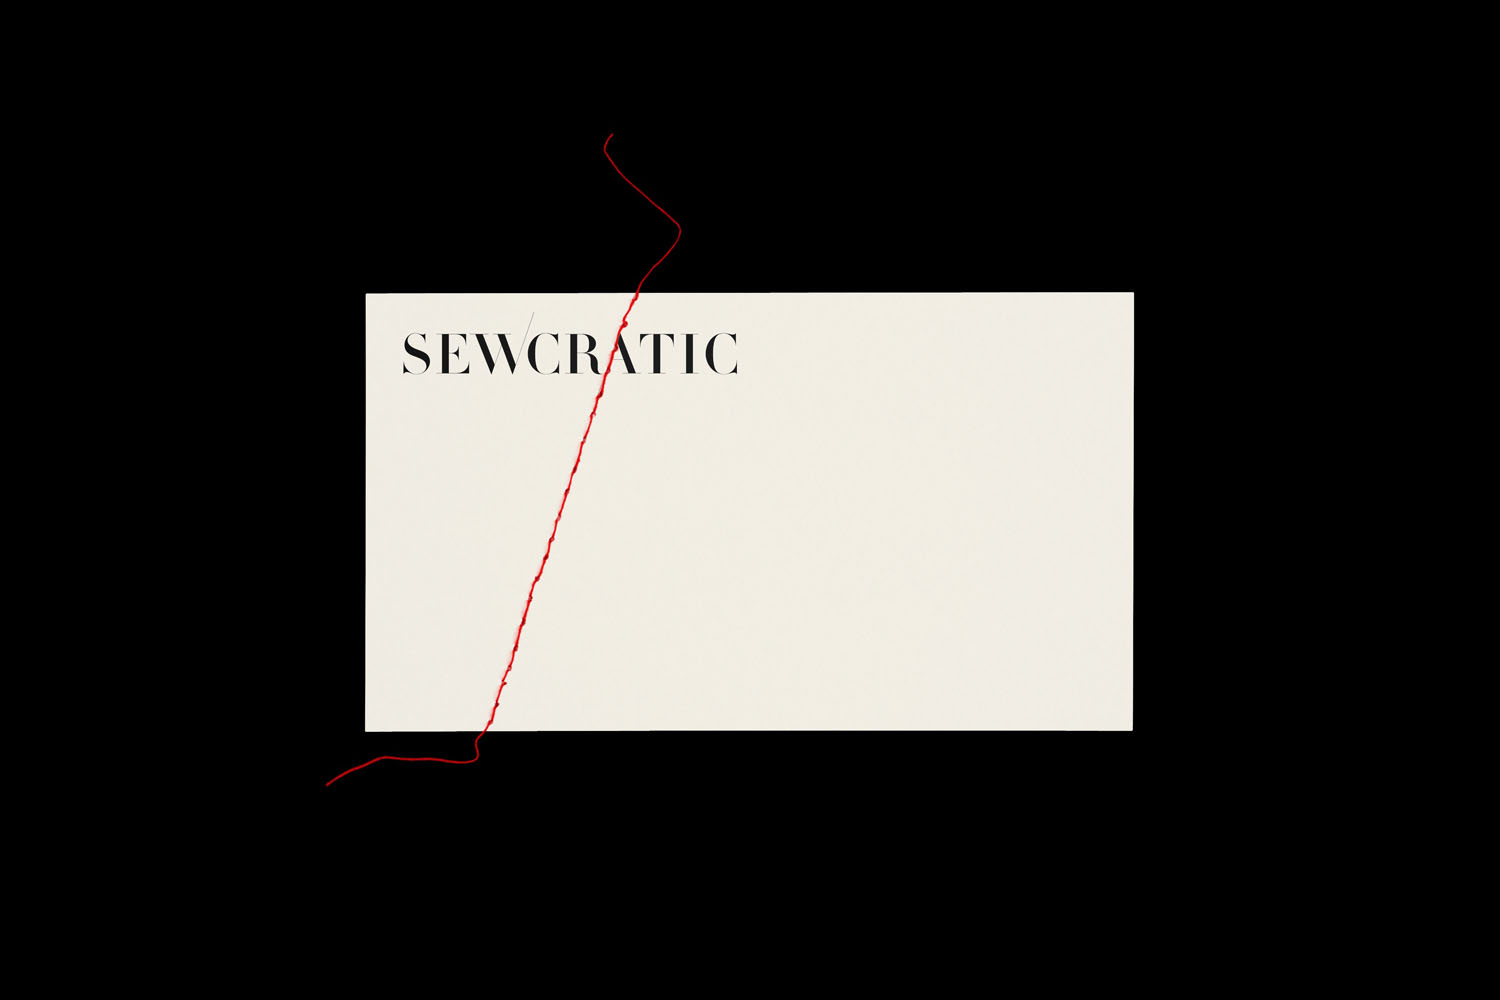 sewcratic_2